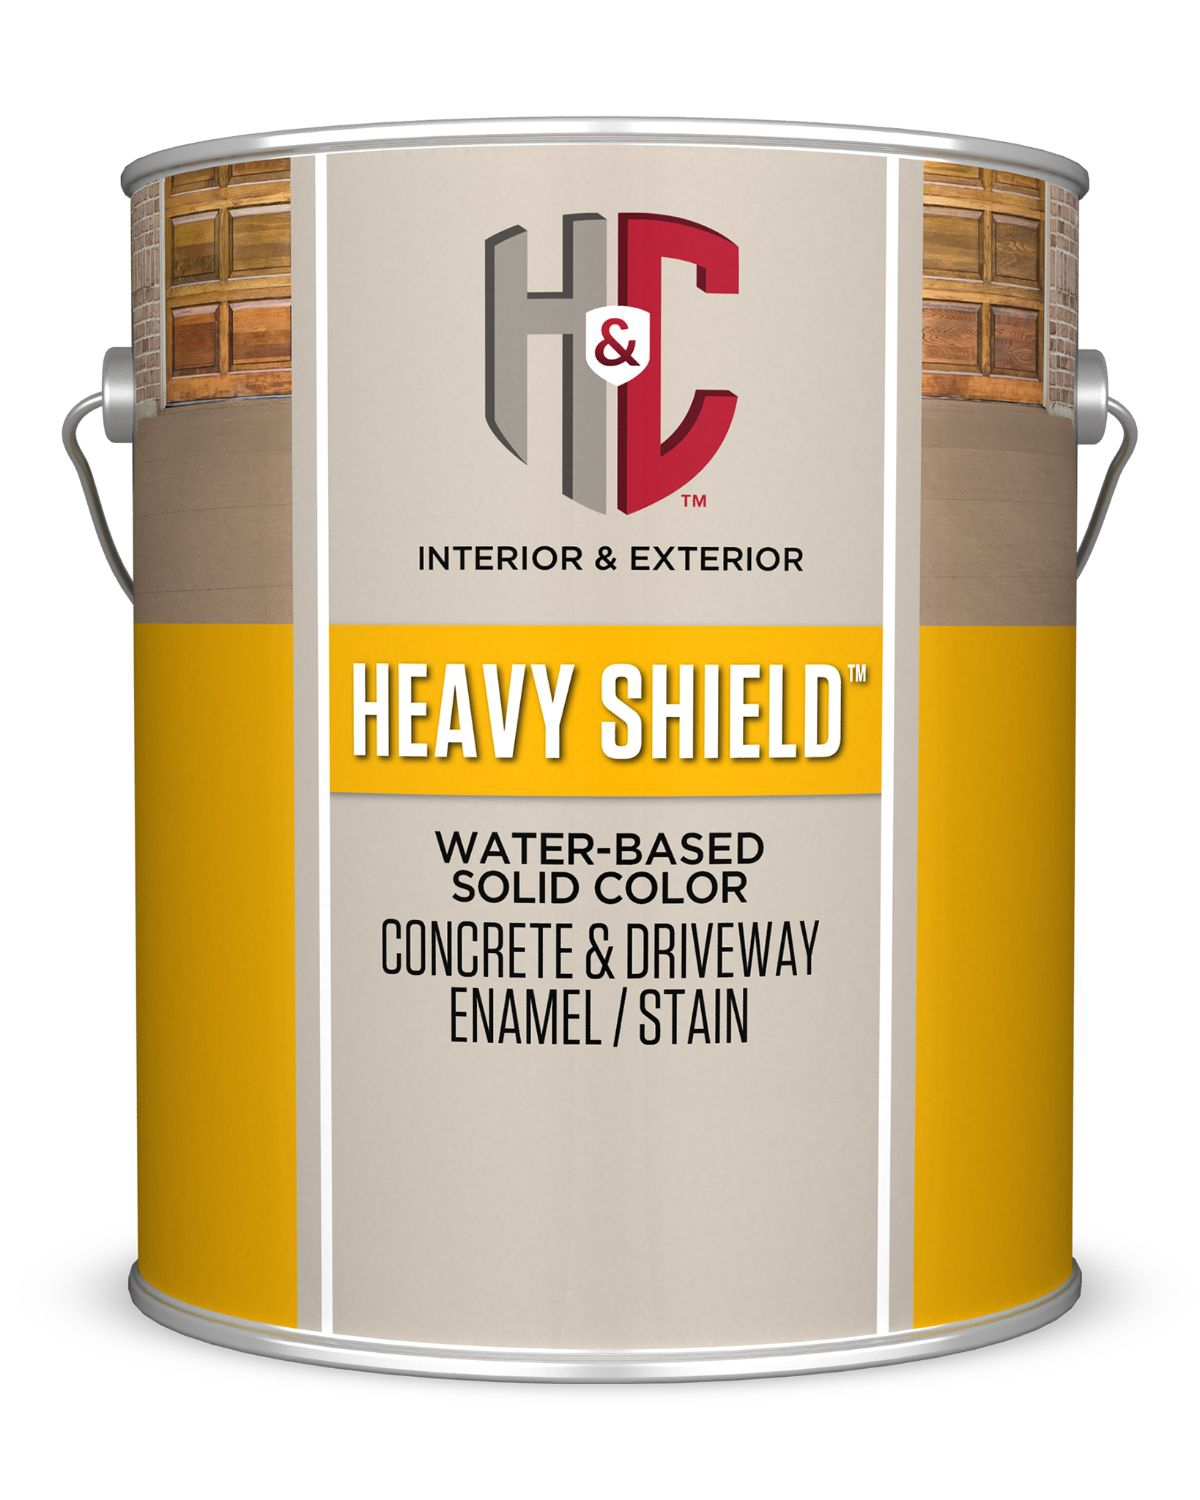 H C Heavy Shield Water Based Solid Color Concrete Driveway Enamel Stain Sherwinwilliams